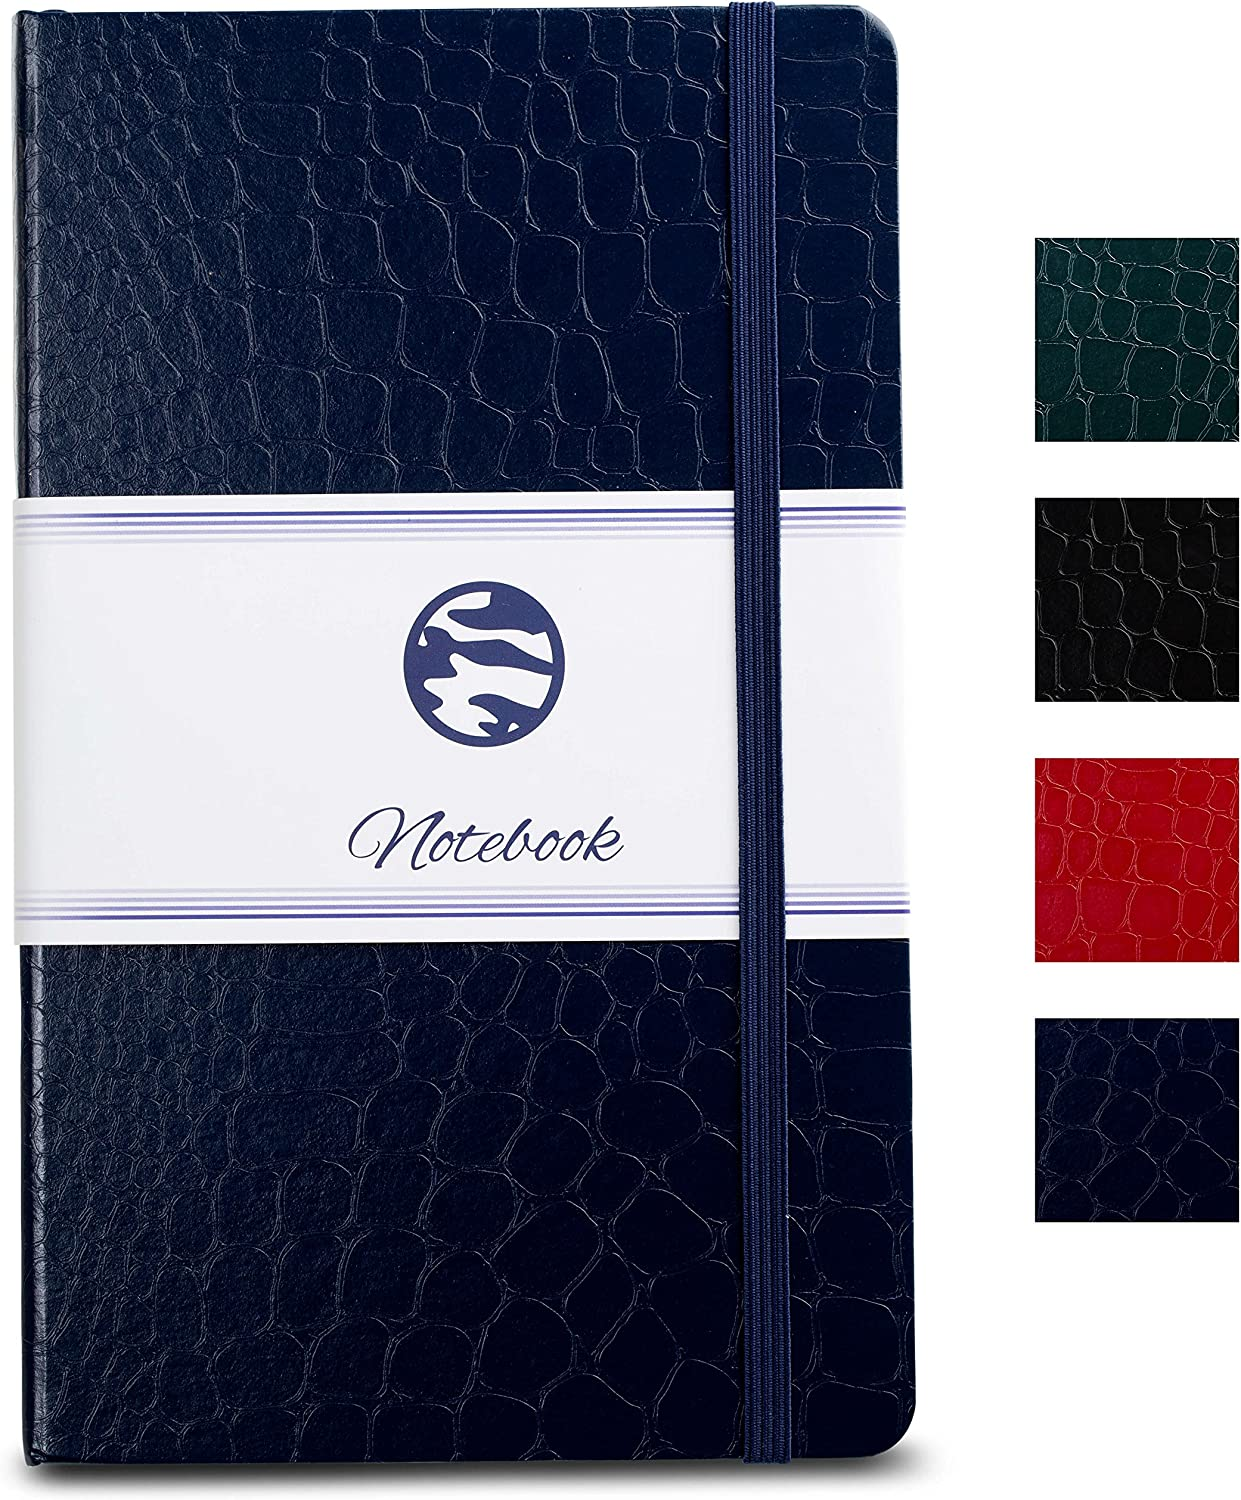 Journal | Notebook Hardcover - Beautiful Crocodile Faux Leather Textured size A5 (8.25 x 5